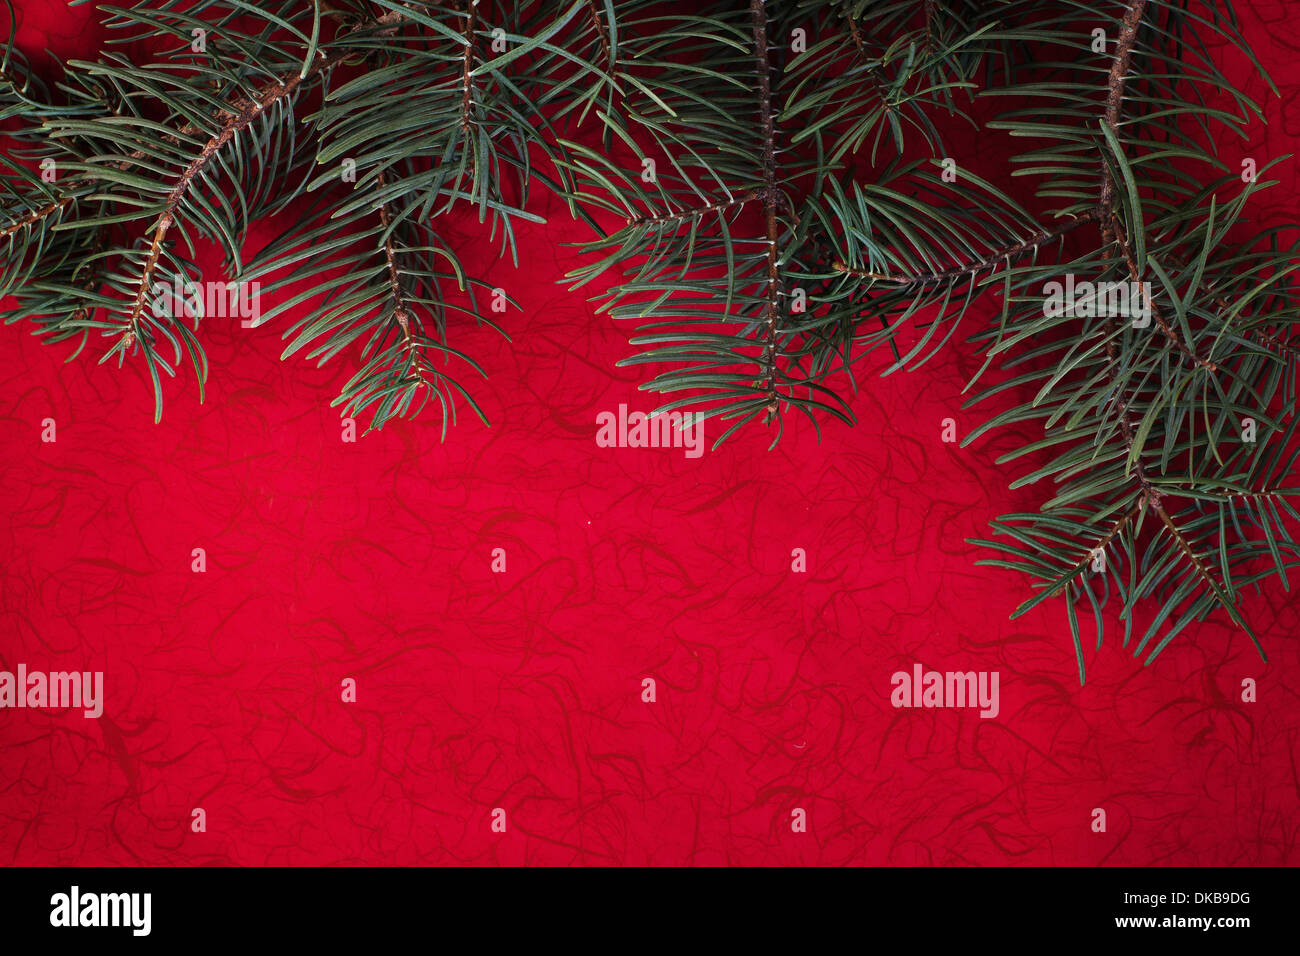 red holiday background - Stock Image